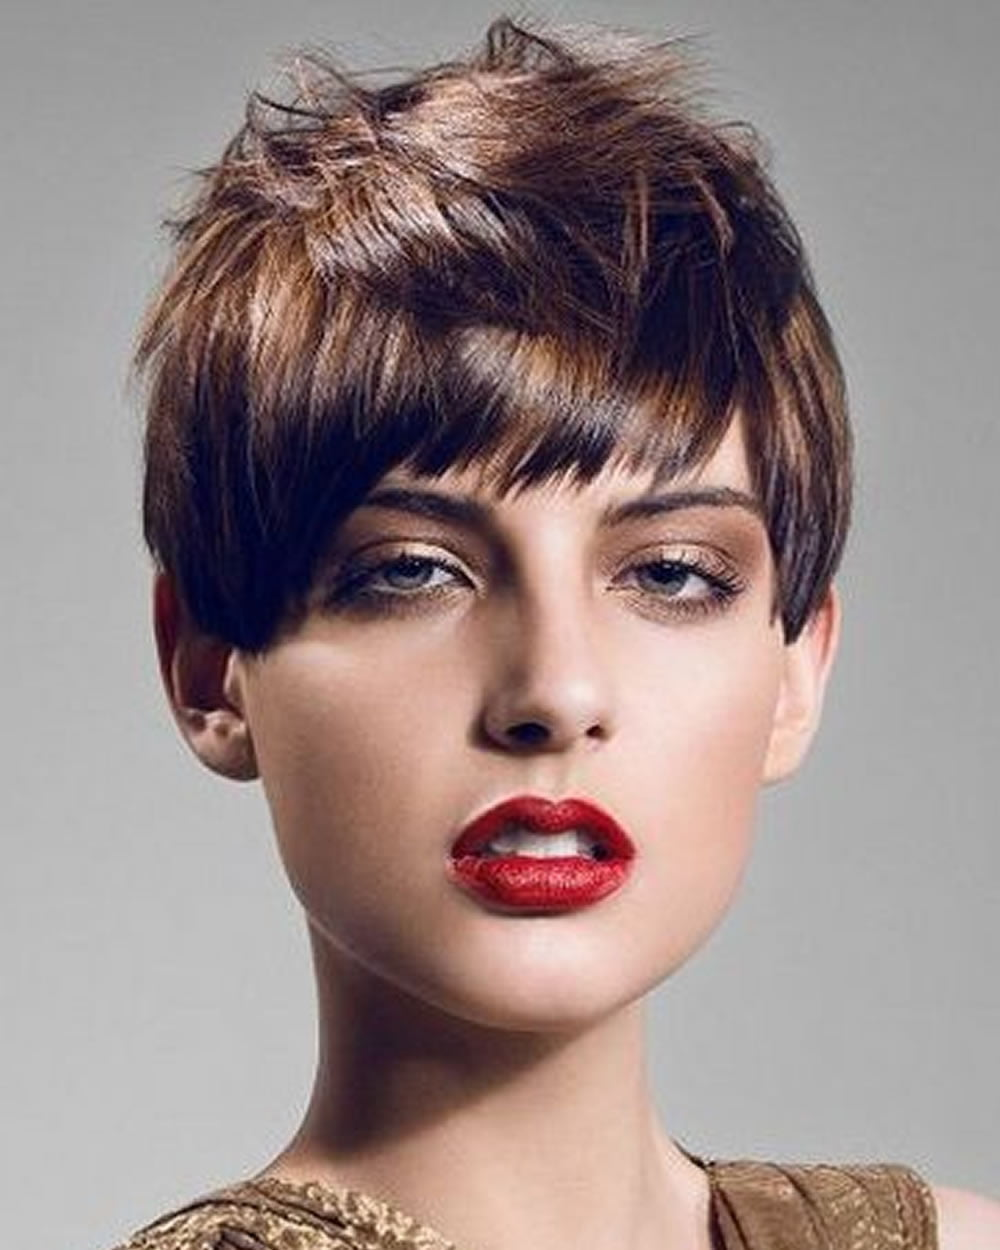 2018 Short Hair Ideas \u0026 Latest Hair Colors and Designs for Ladies \u2013 Page 5 \u2013 HAIRSTYLES